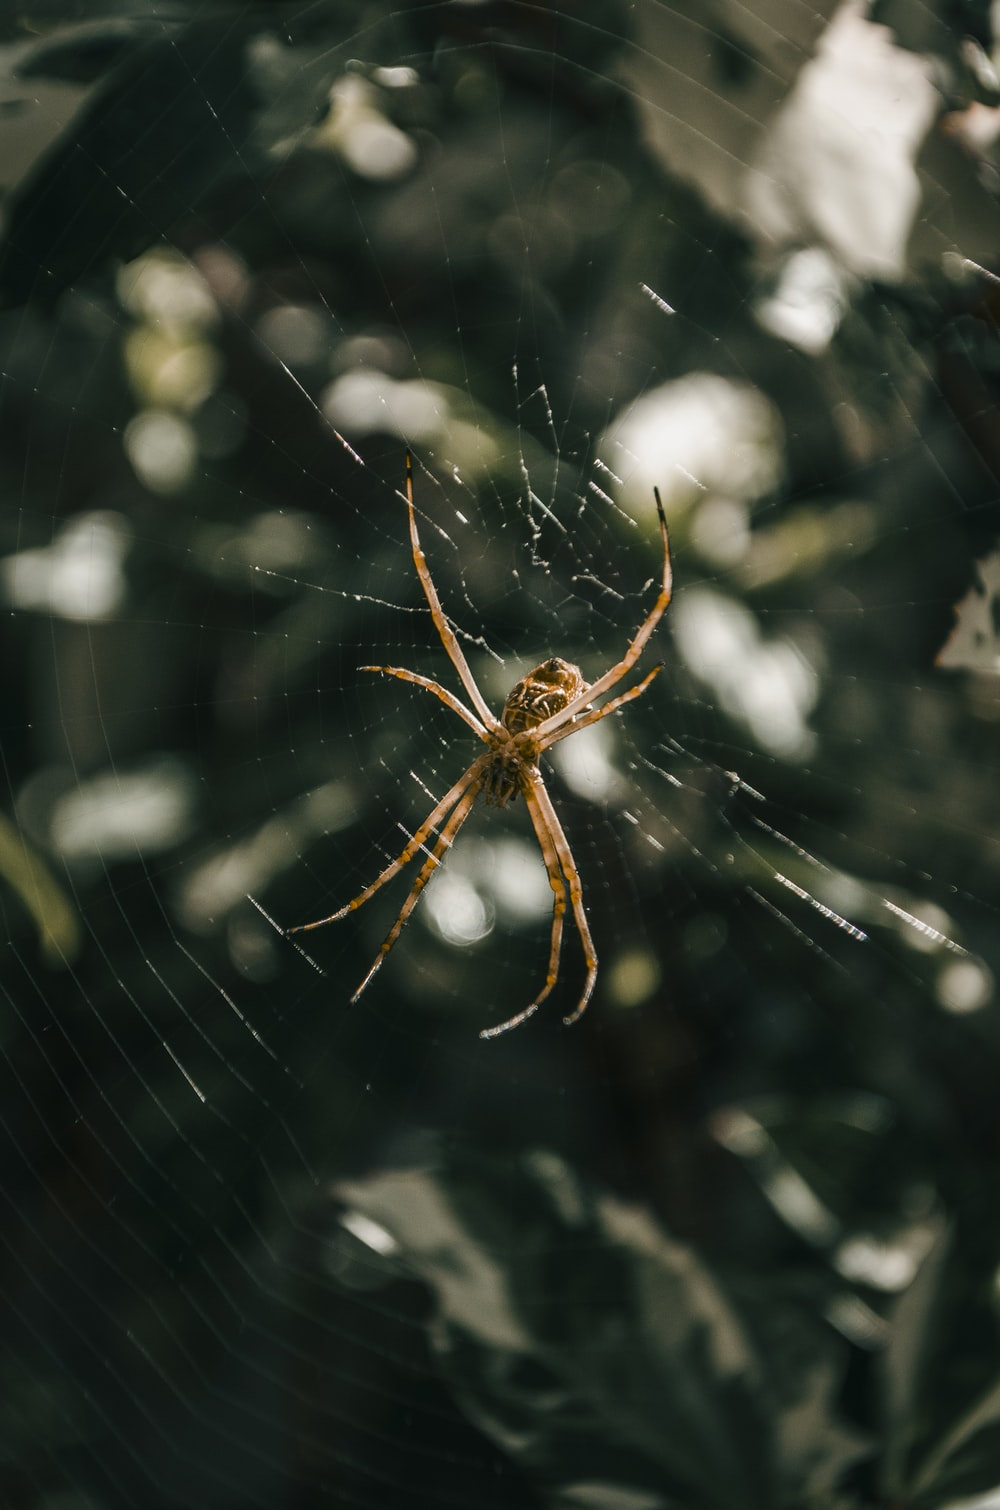 brown spider on web in close up photography